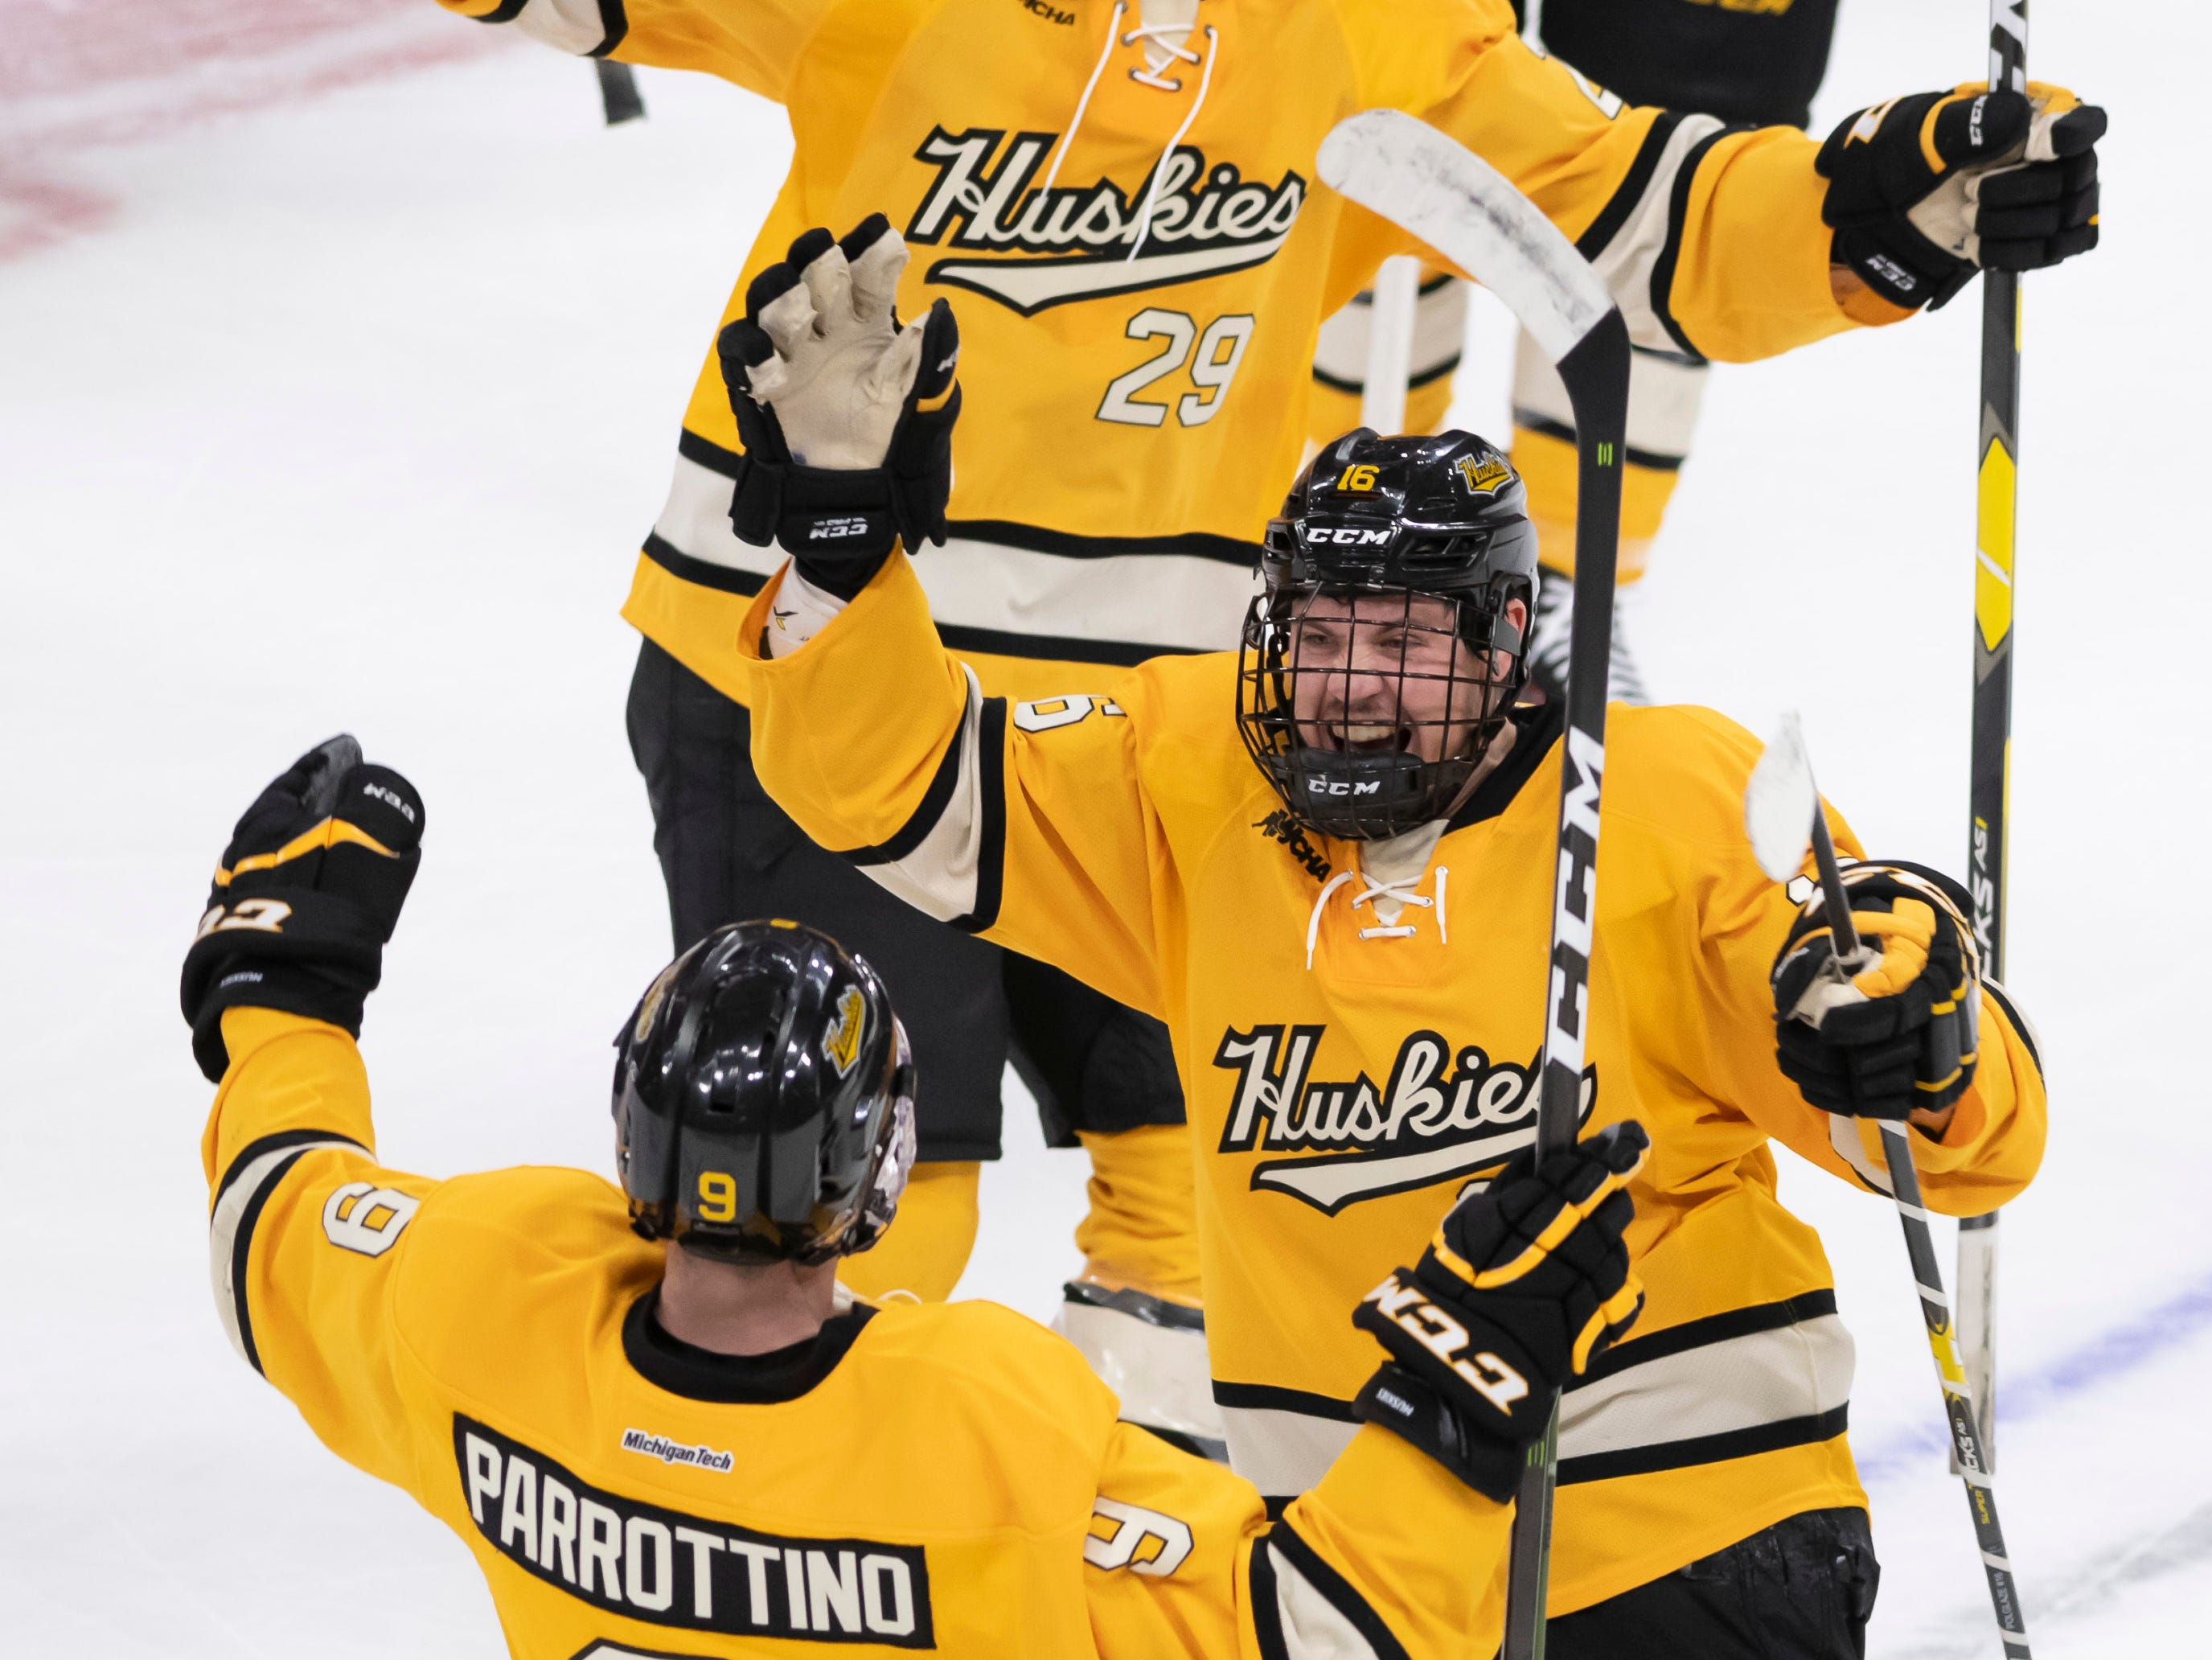 Michigan Tech forward Tommy Parrottino (9) celebrates with his teammates after scoring the winning goal in the shootout.